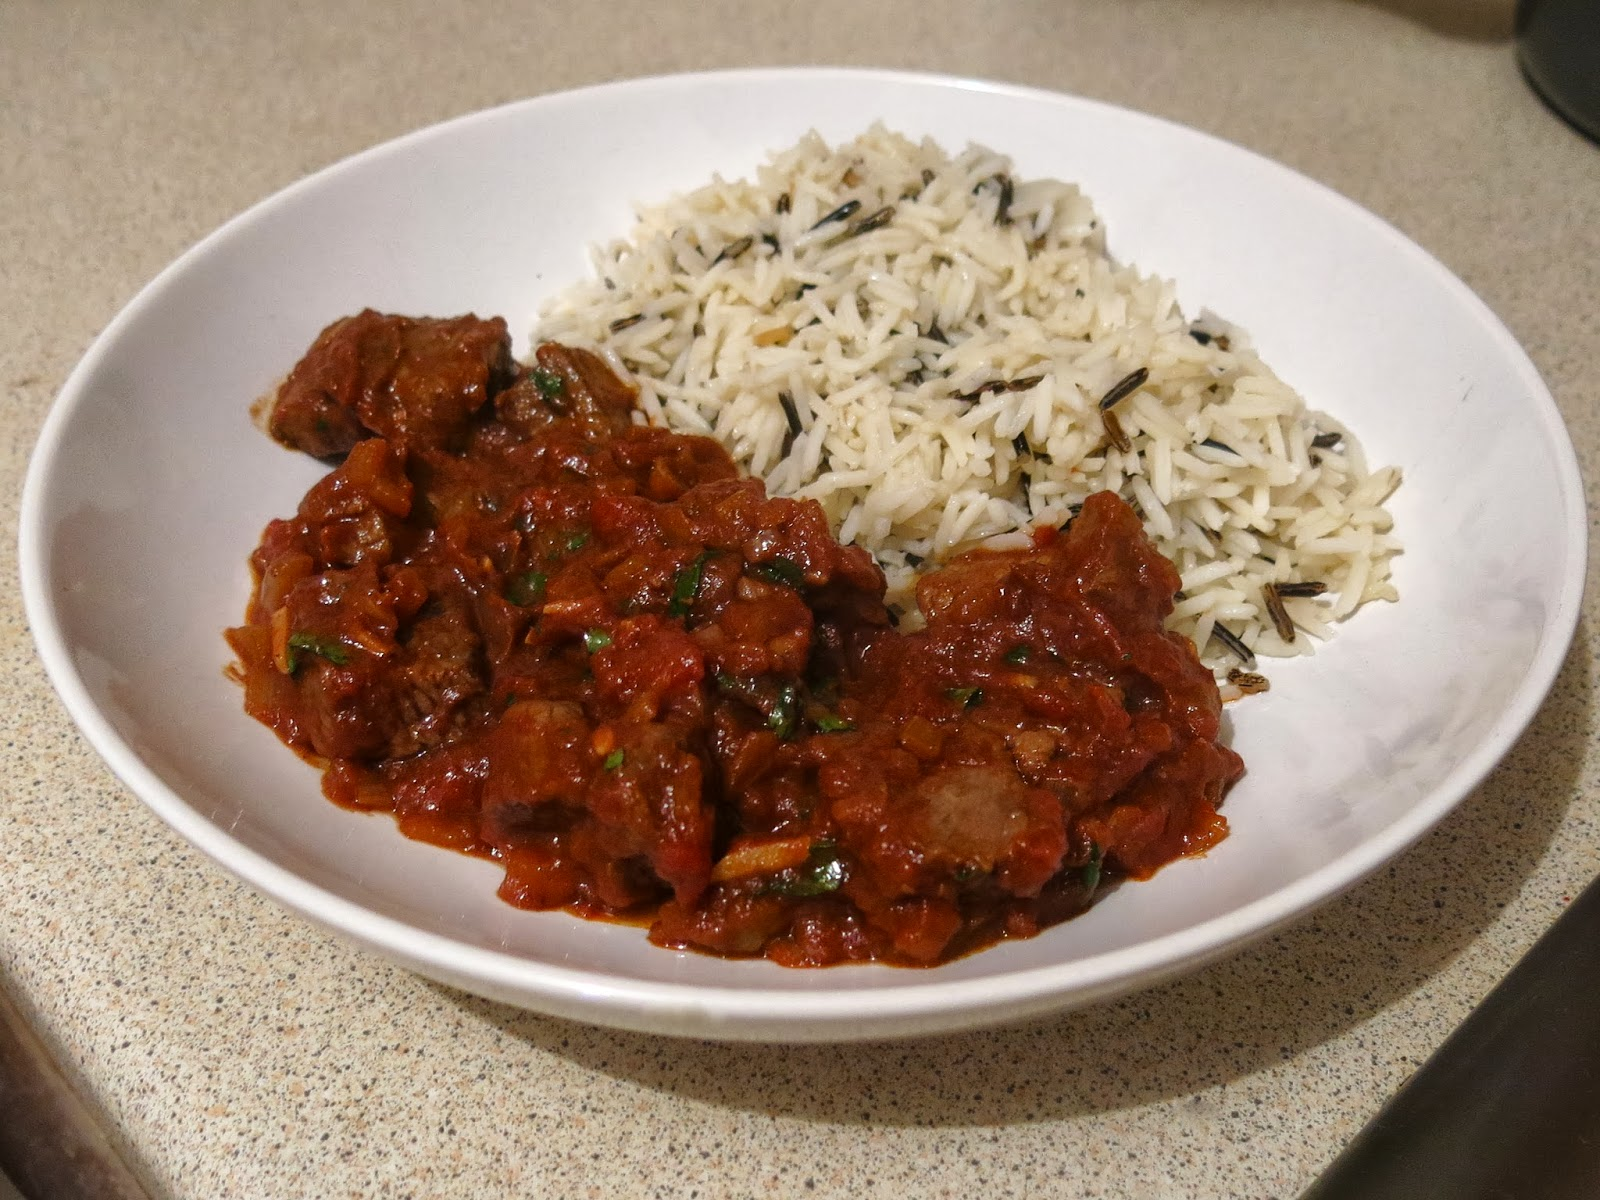 Just a butchers daughter lamb rogan josh curry the basis of this recipe is the waitrose rogan josh curry paste which i think is a really good quality and flavour cooking for just myself i used 2 forumfinder Gallery